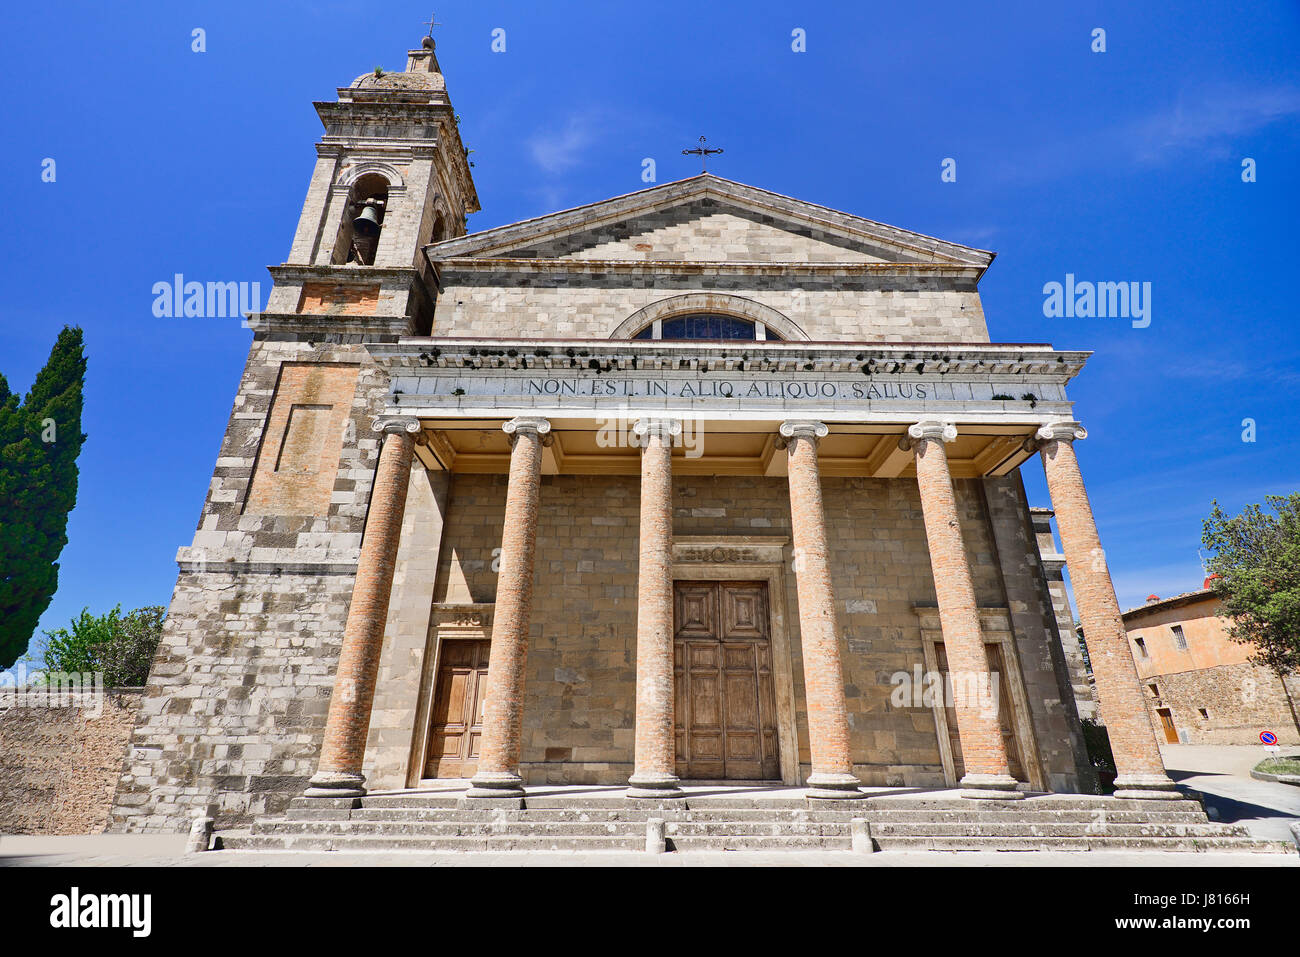 Italy, Tuscany, Val D'Orcia, Cathedral of San Salvatore. - Stock Image